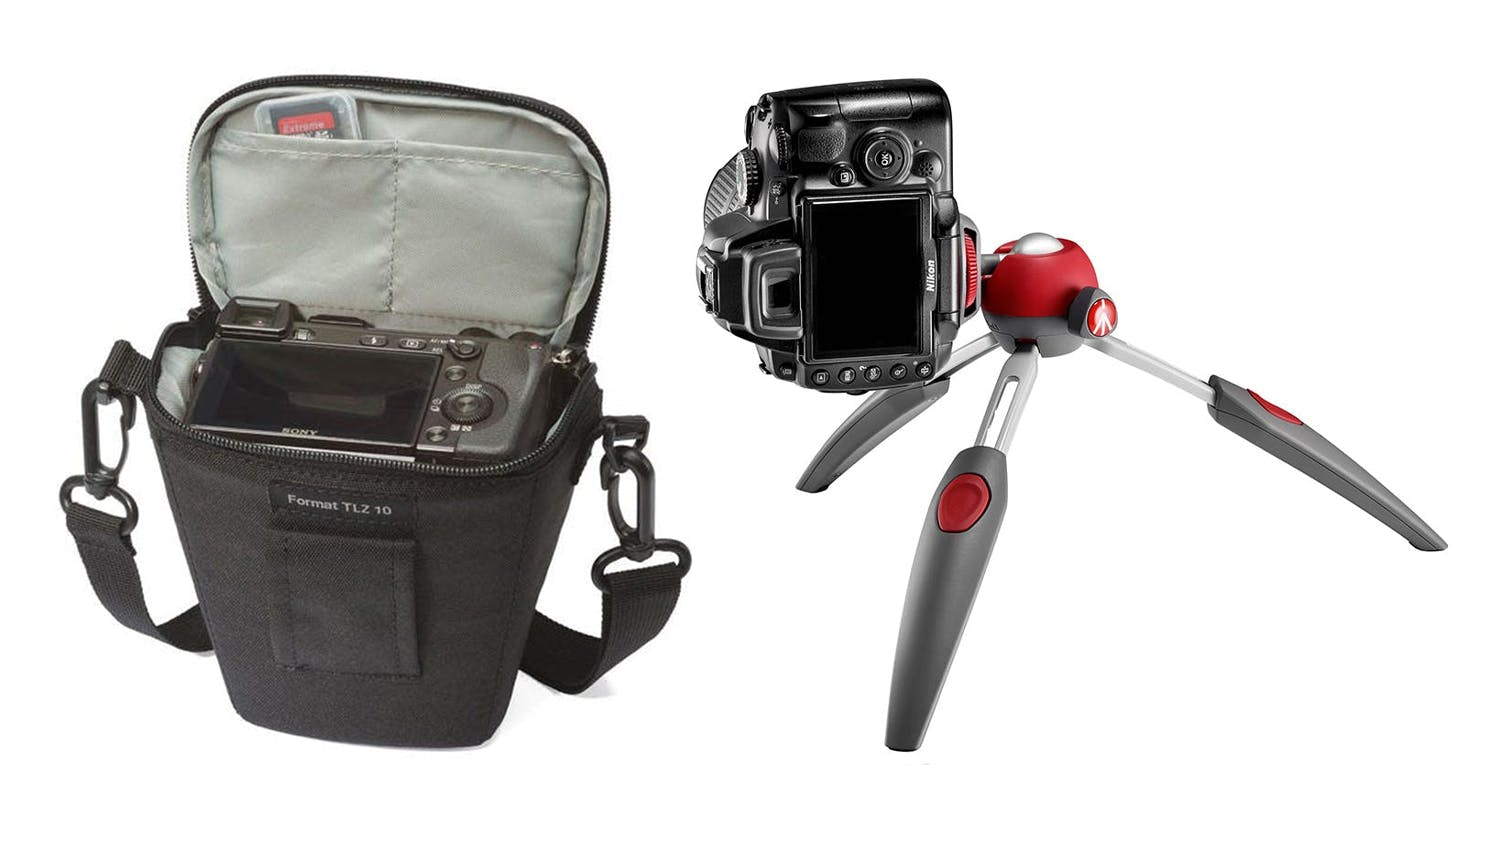 Lowepro Topload Holster Format TLZ 10 + Manfrotto Pixi 2-Section Mini Tripod Bundle